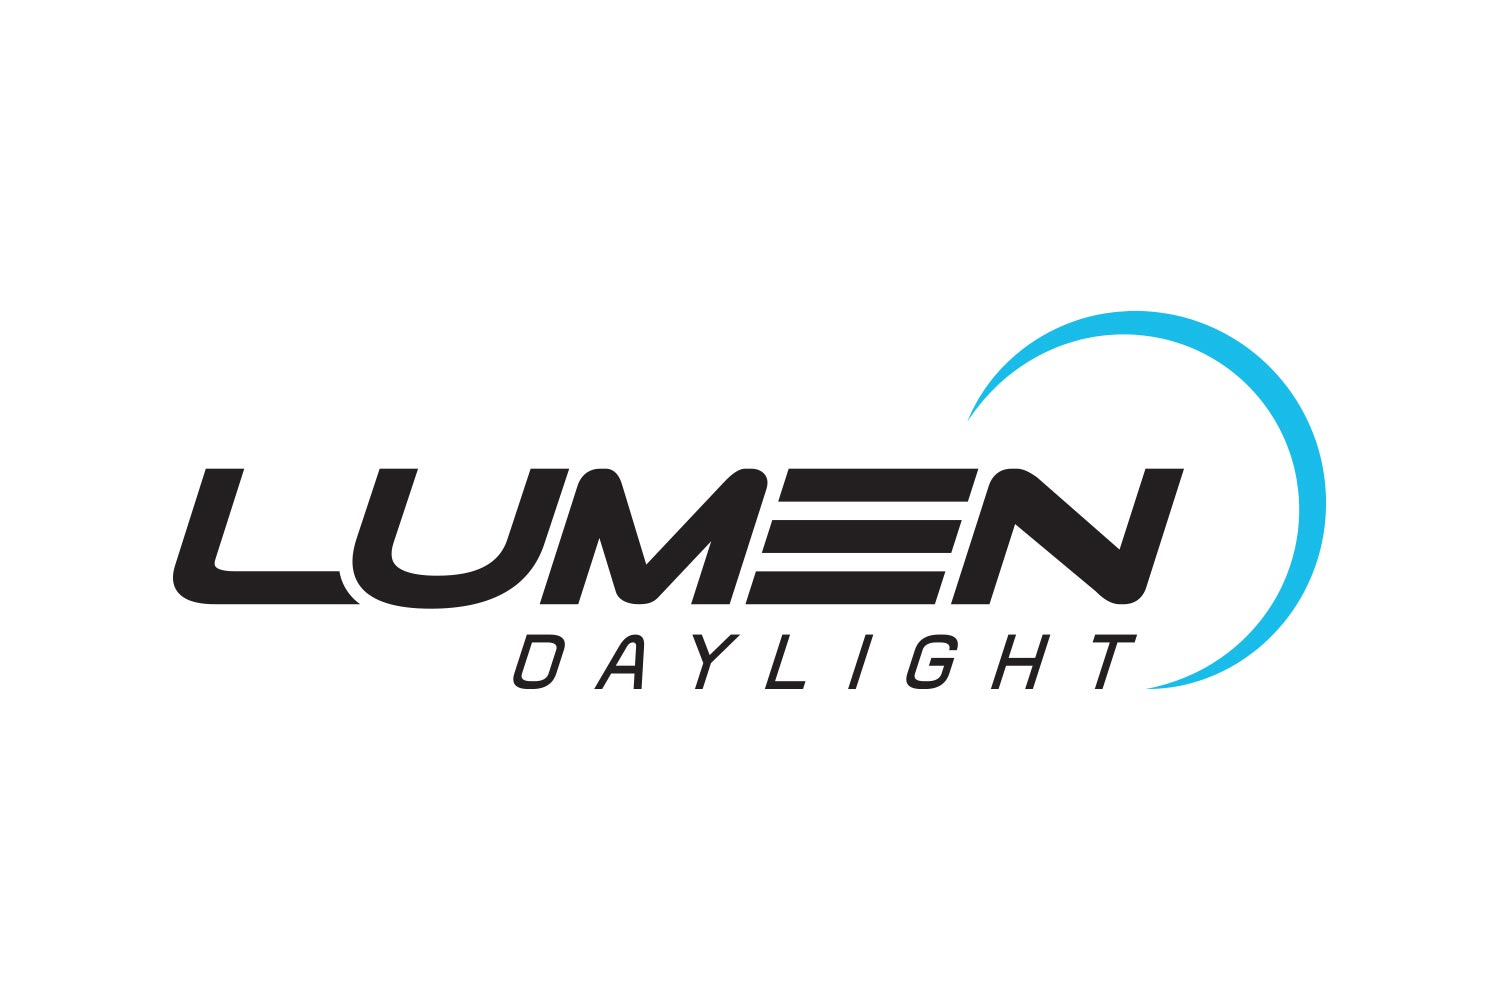 Lumen Cyclops7 Midnight LED extraljus